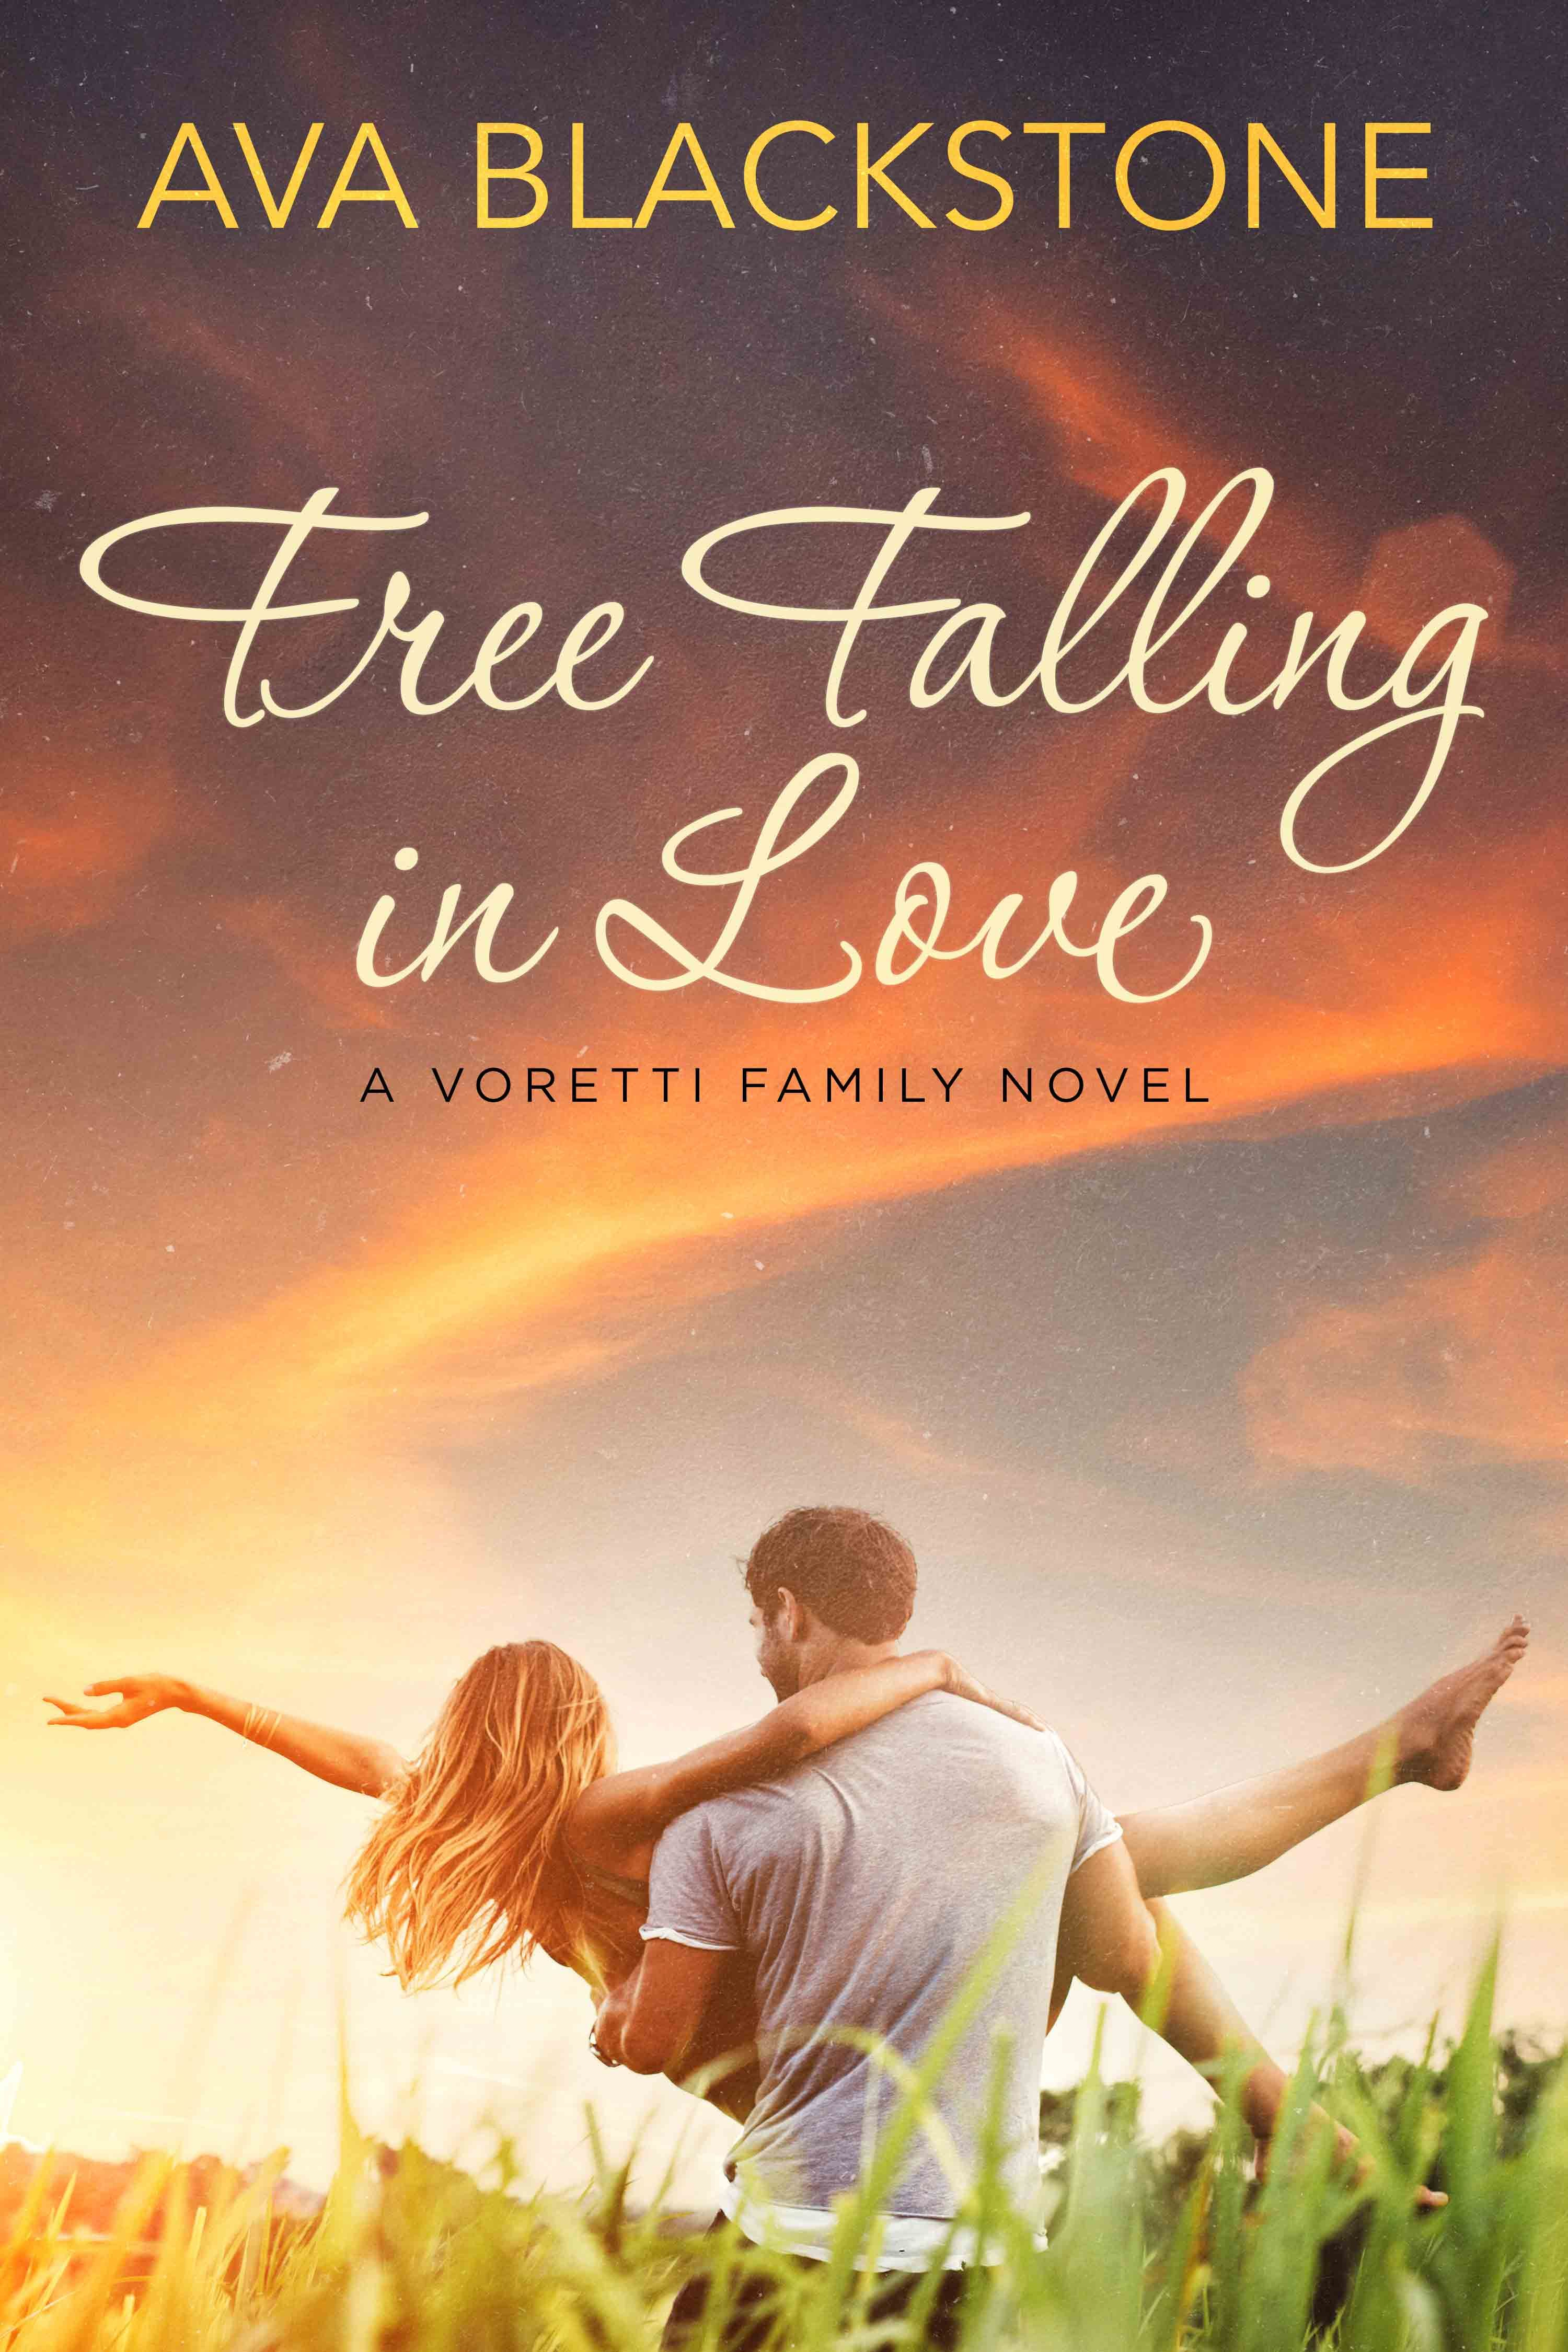 Free falling in love by ava blackstone nikki thought